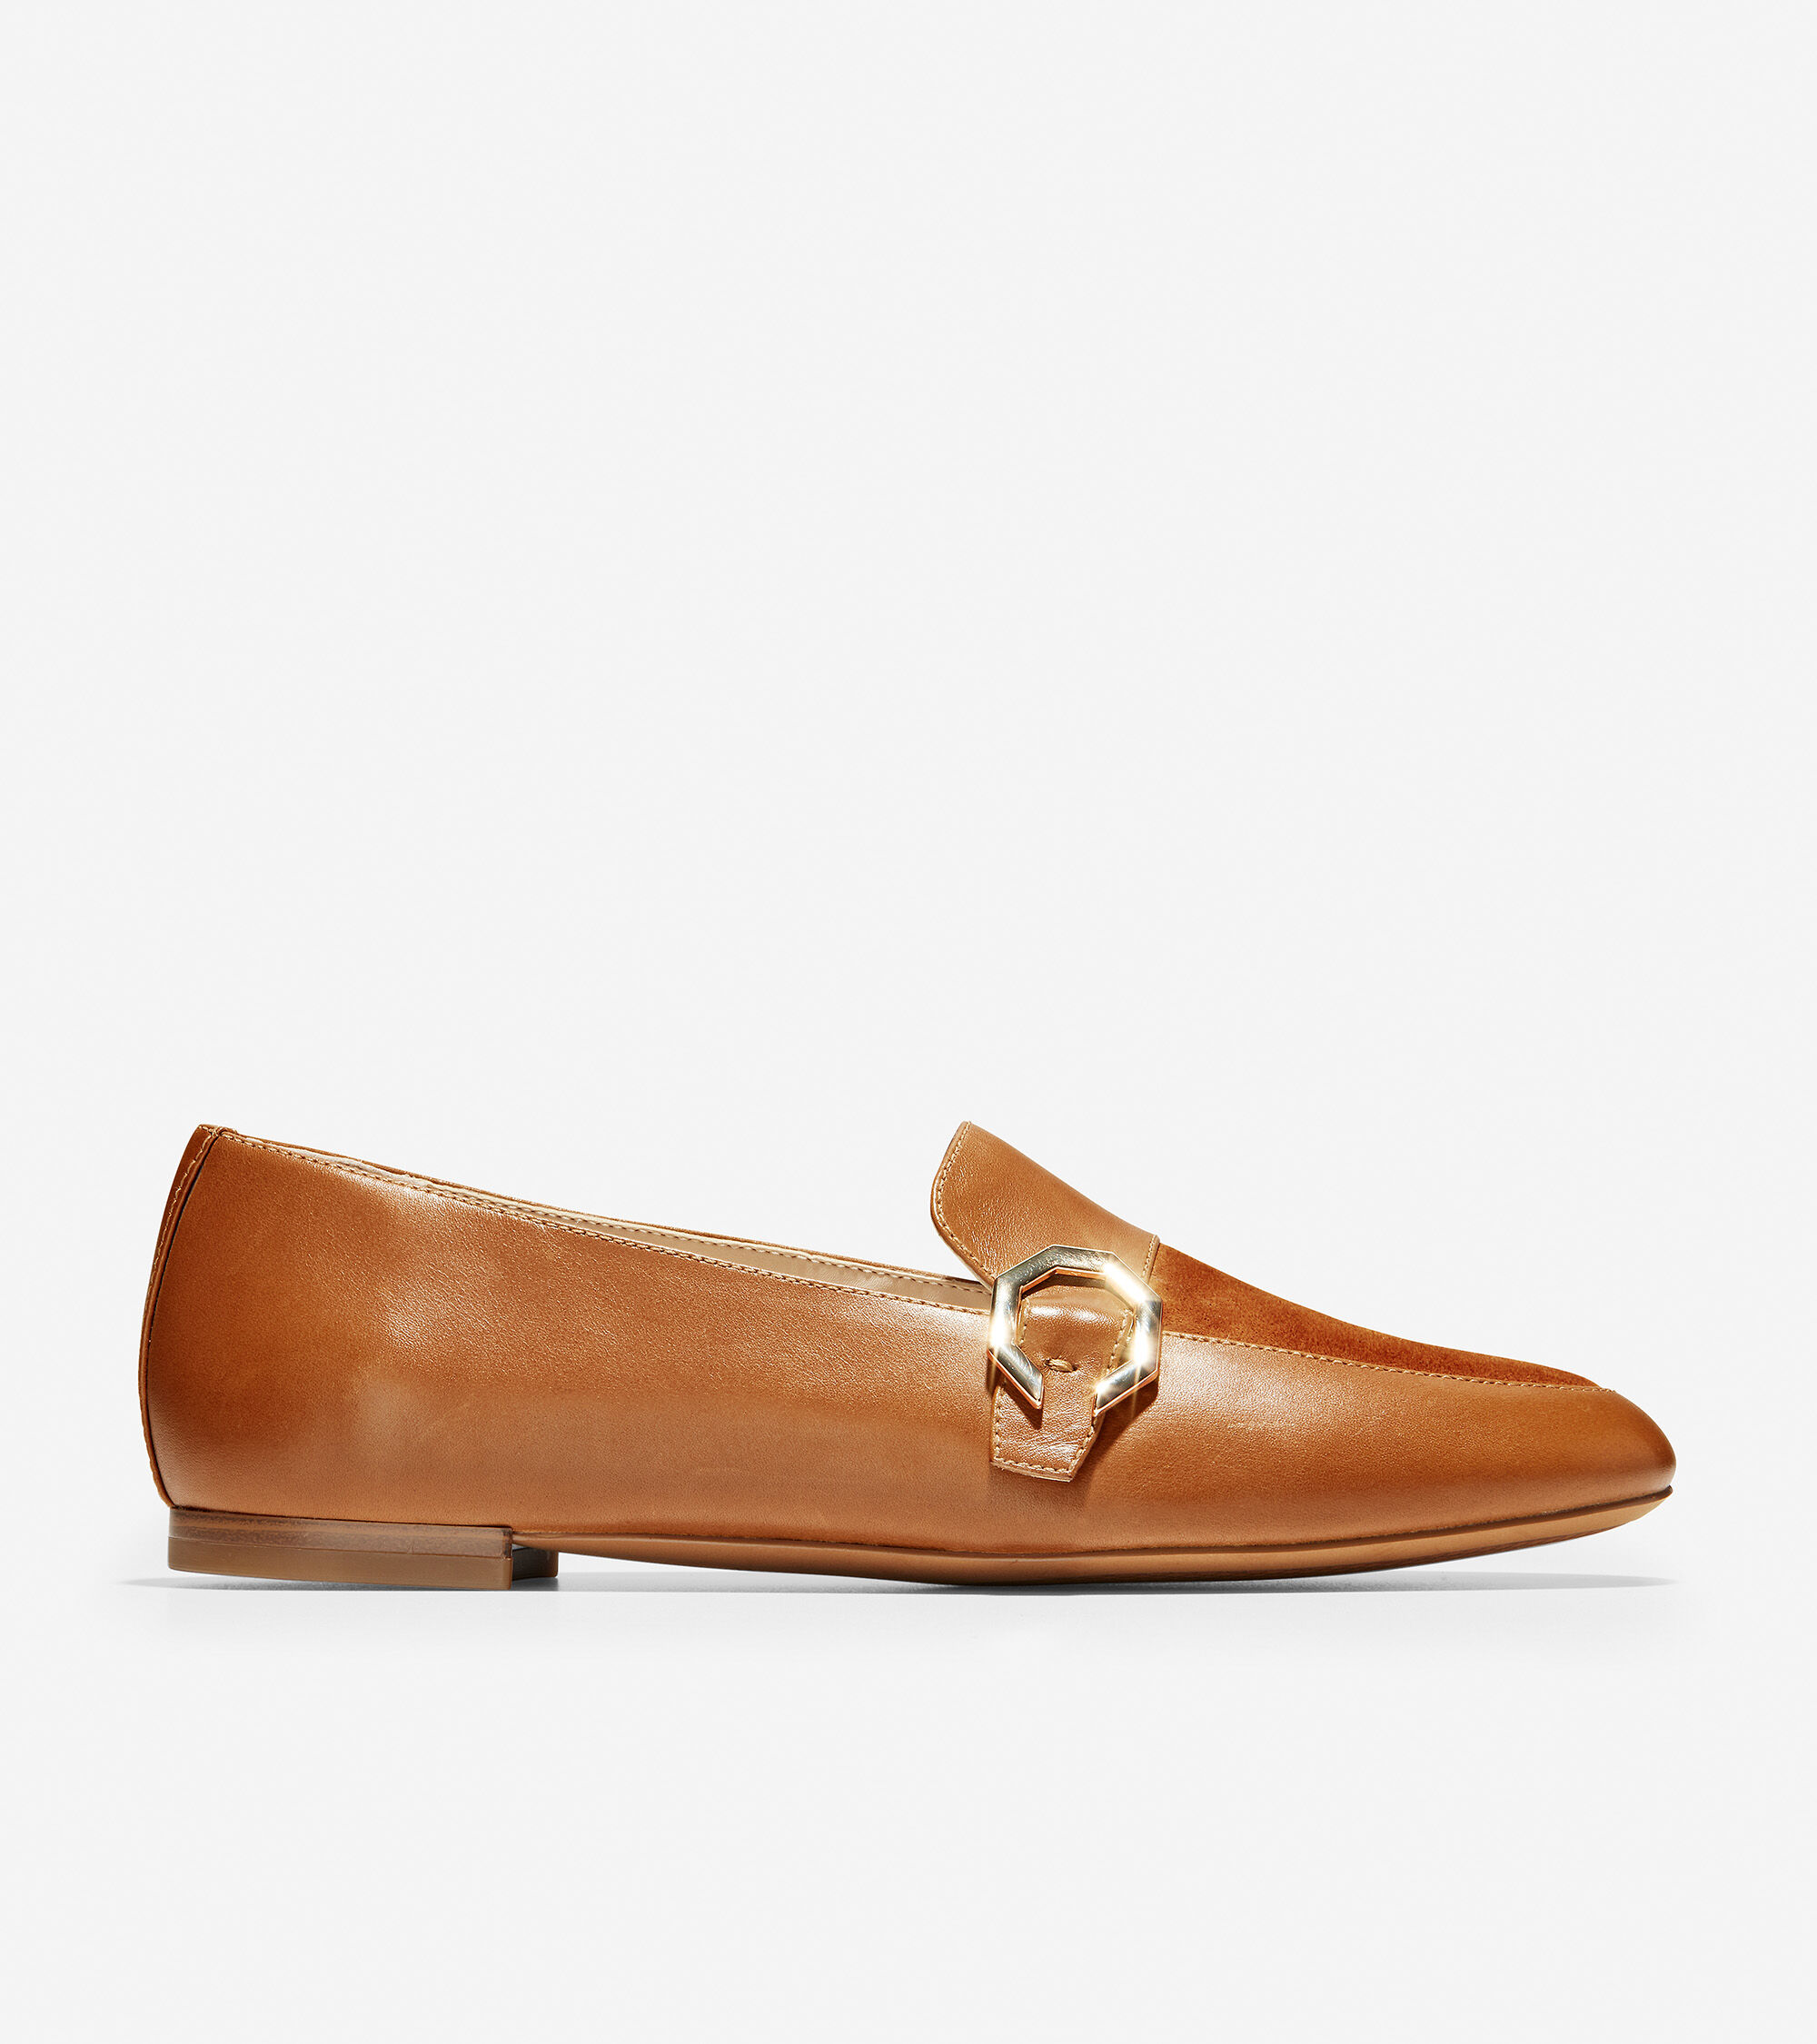 British Tan Leather-Suede   Cole Haan